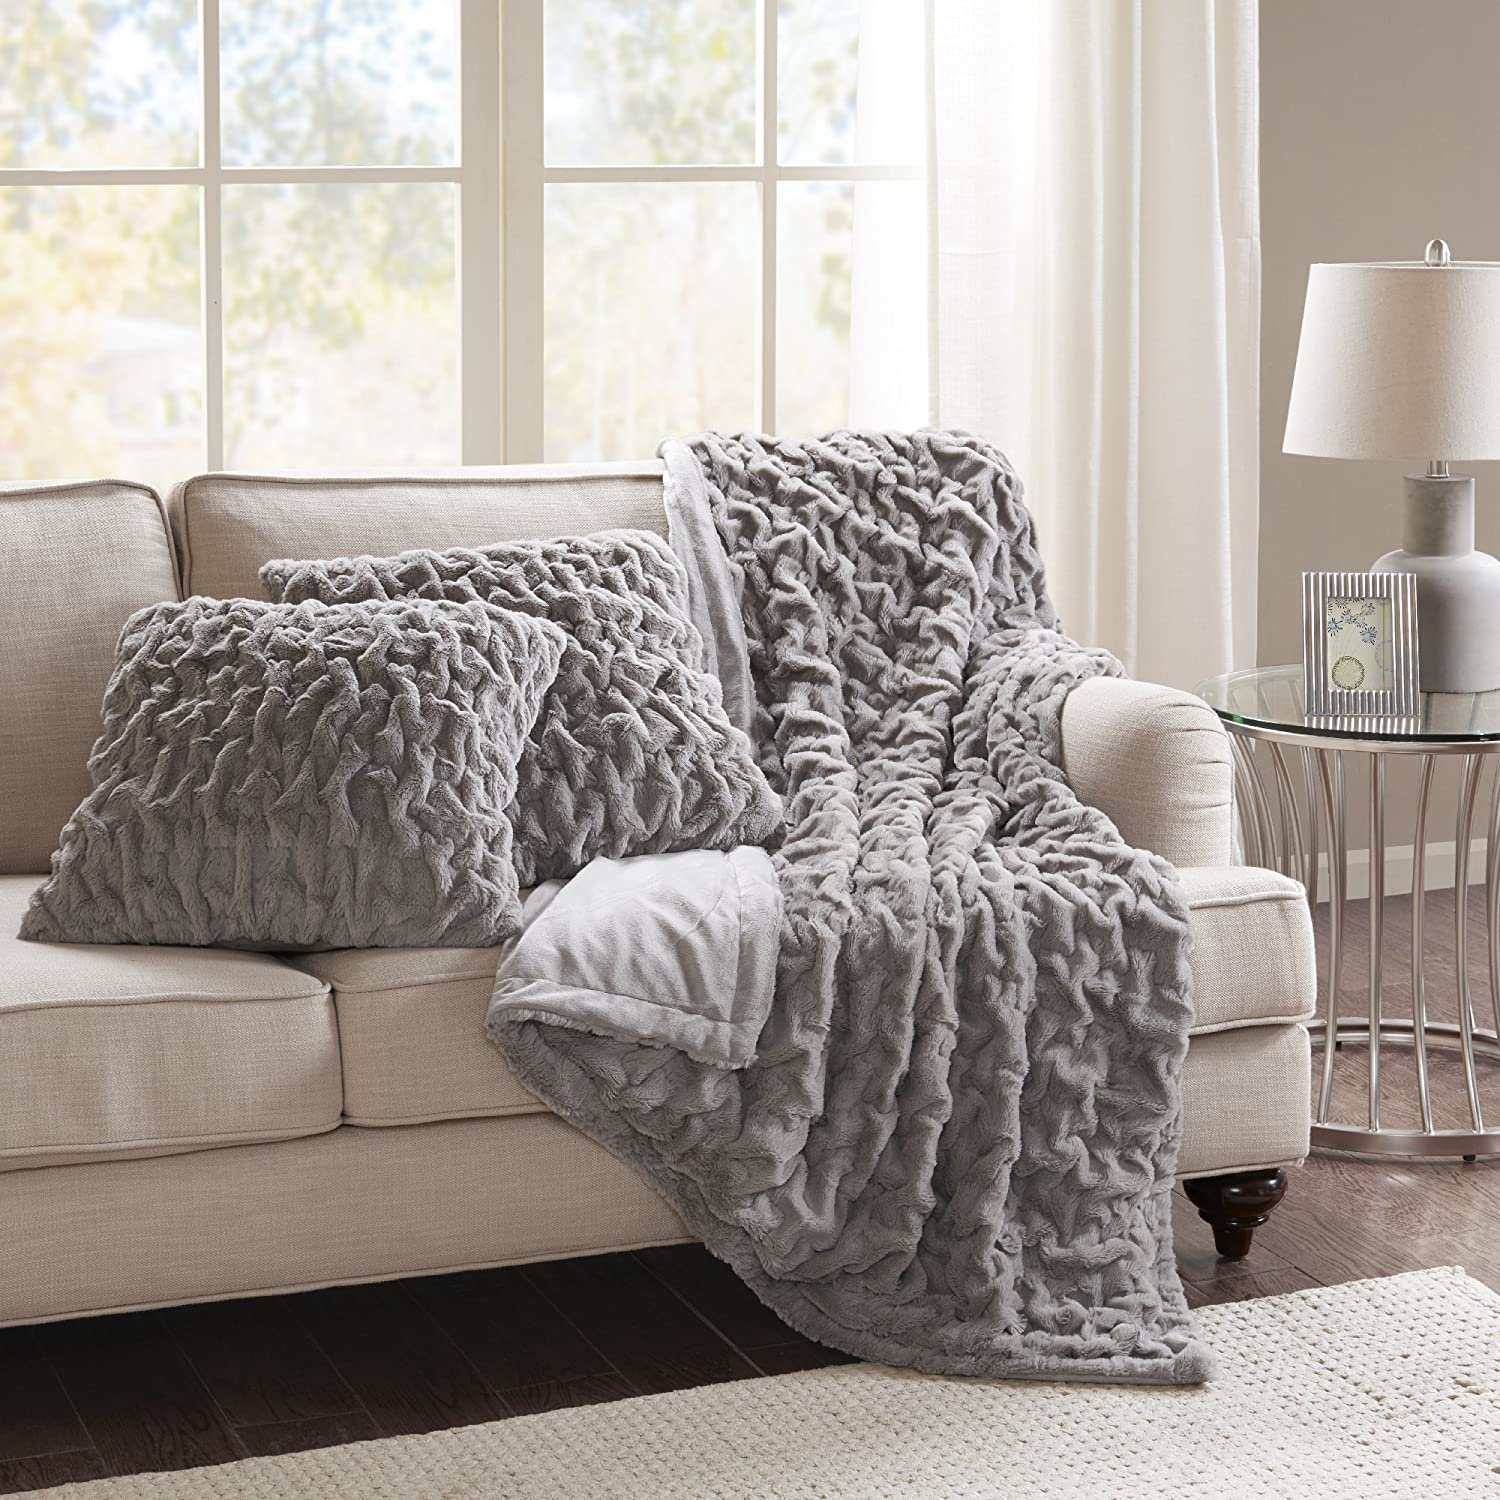 Neutral living room accessories throw pillows blanket cozy style